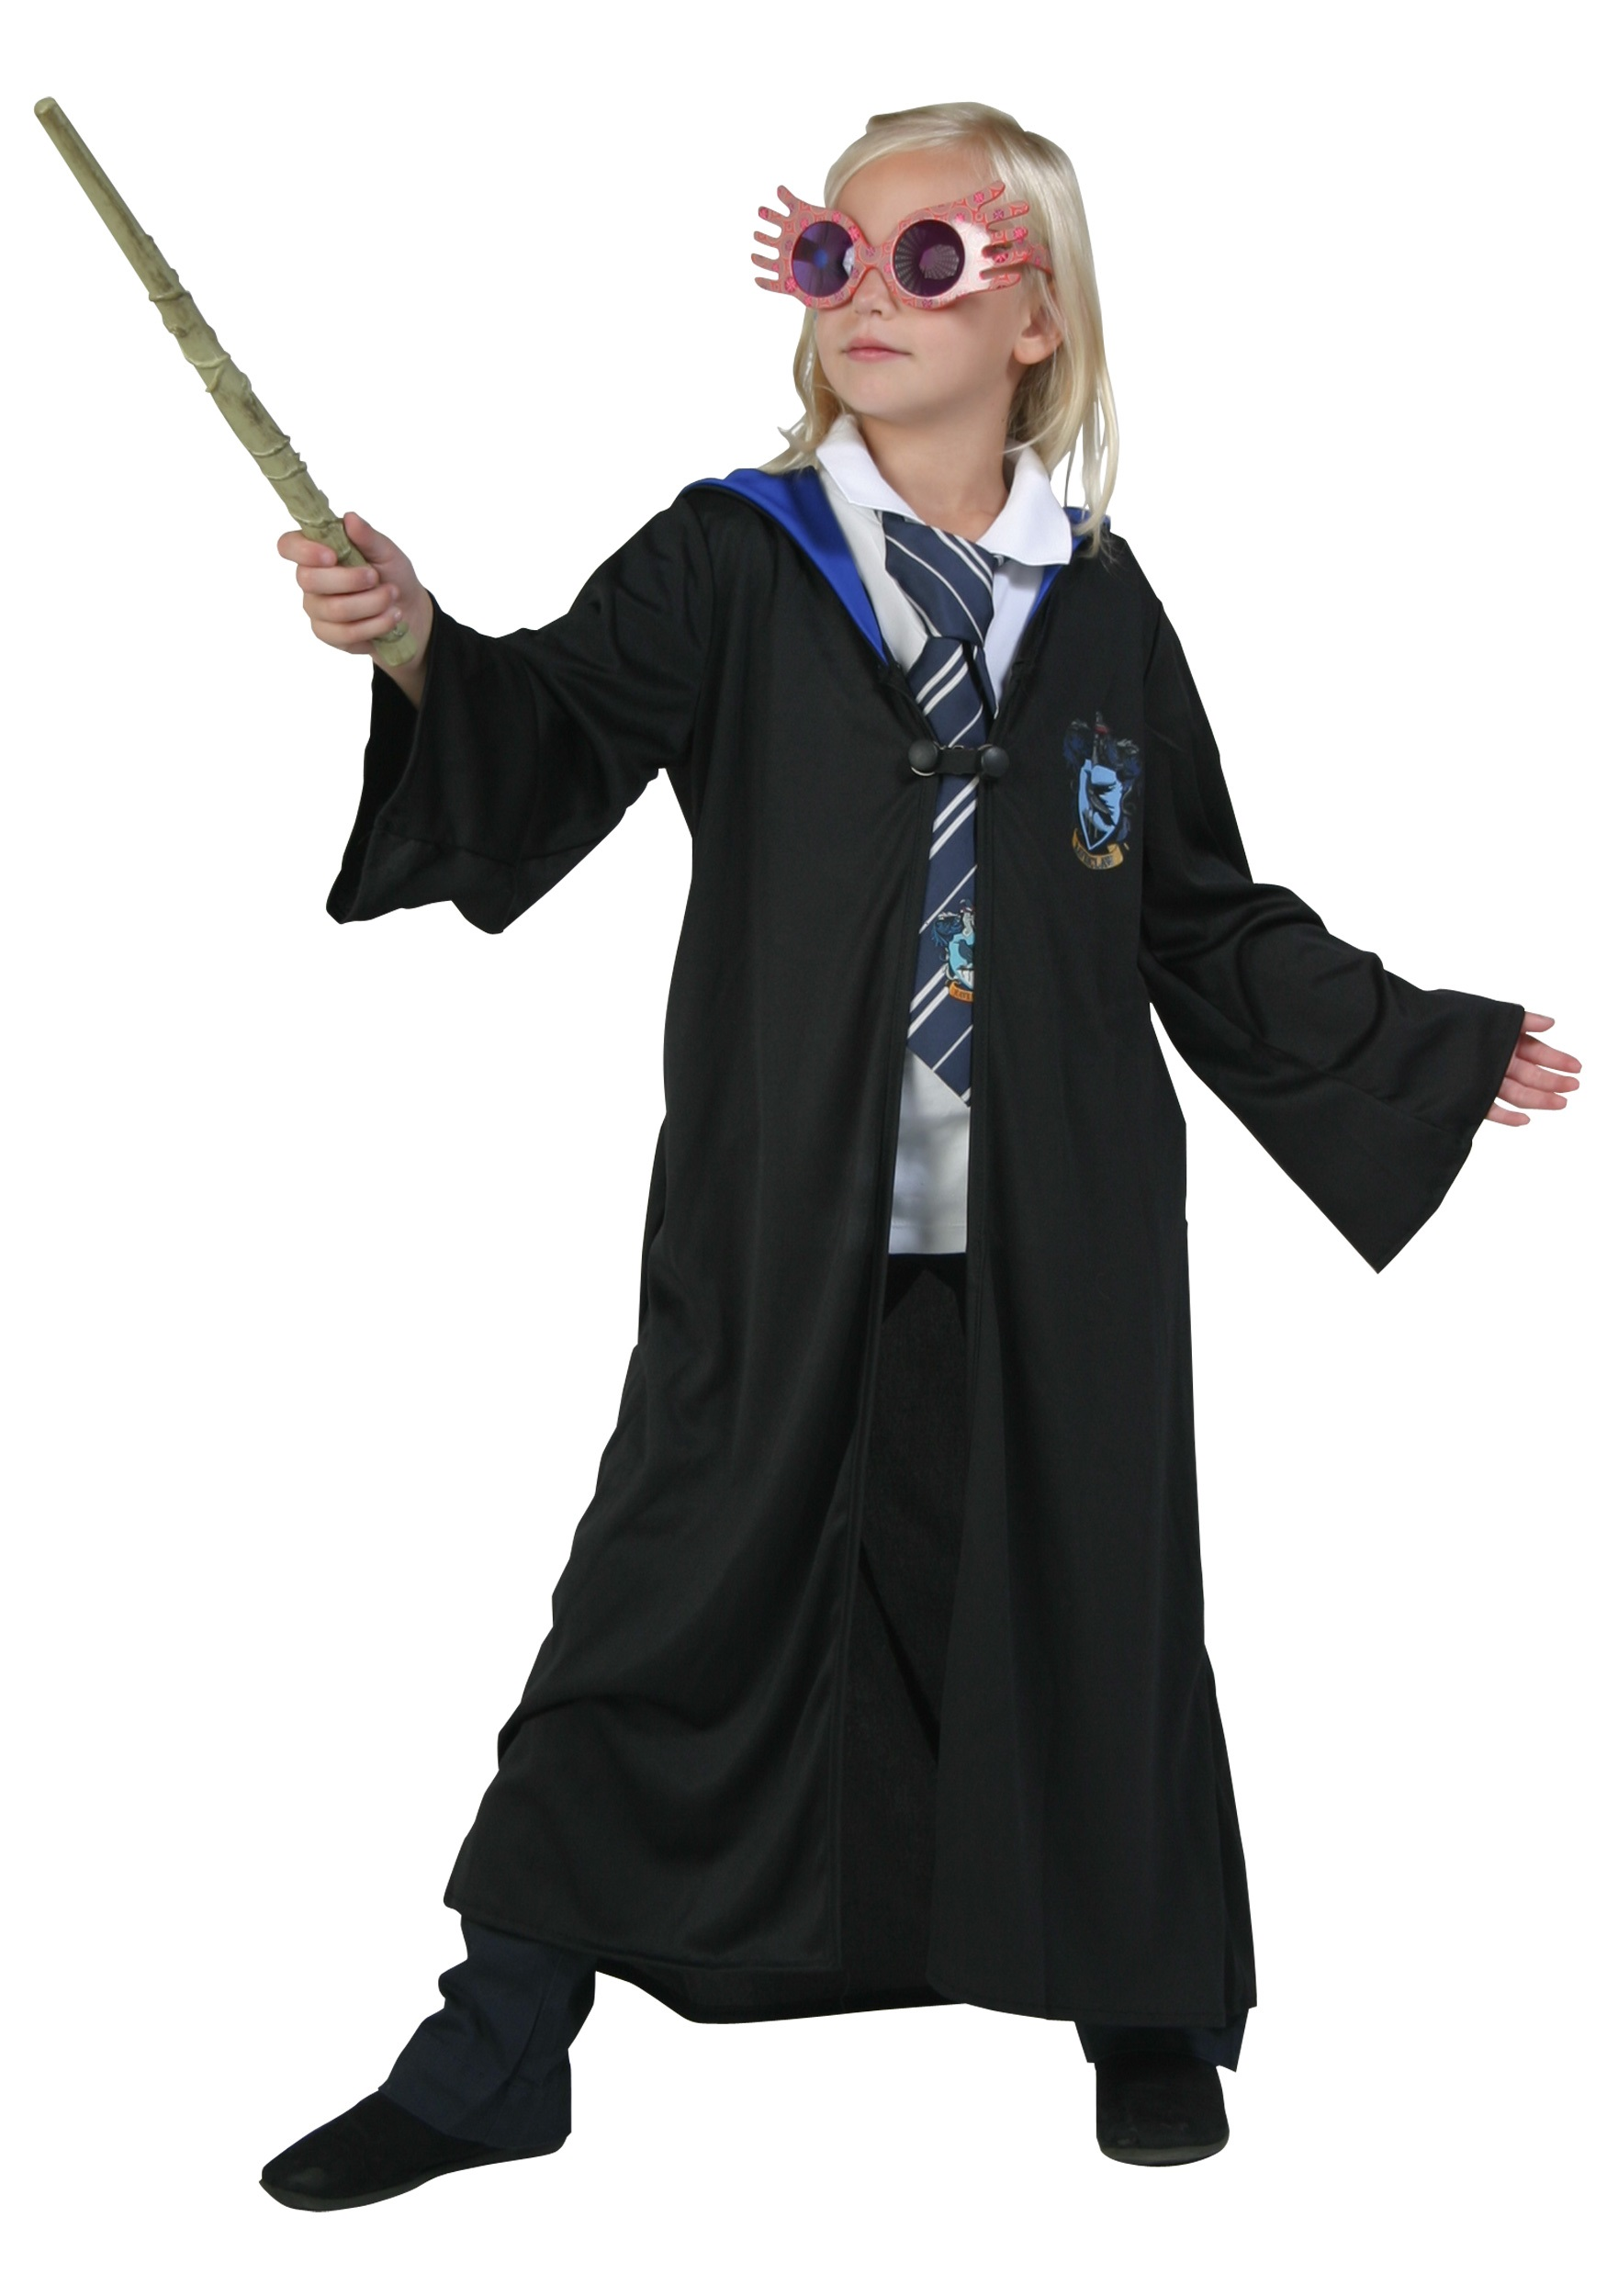 Harry potter costumes accessories halloweencostumes child luna lovegood costume solutioingenieria Images